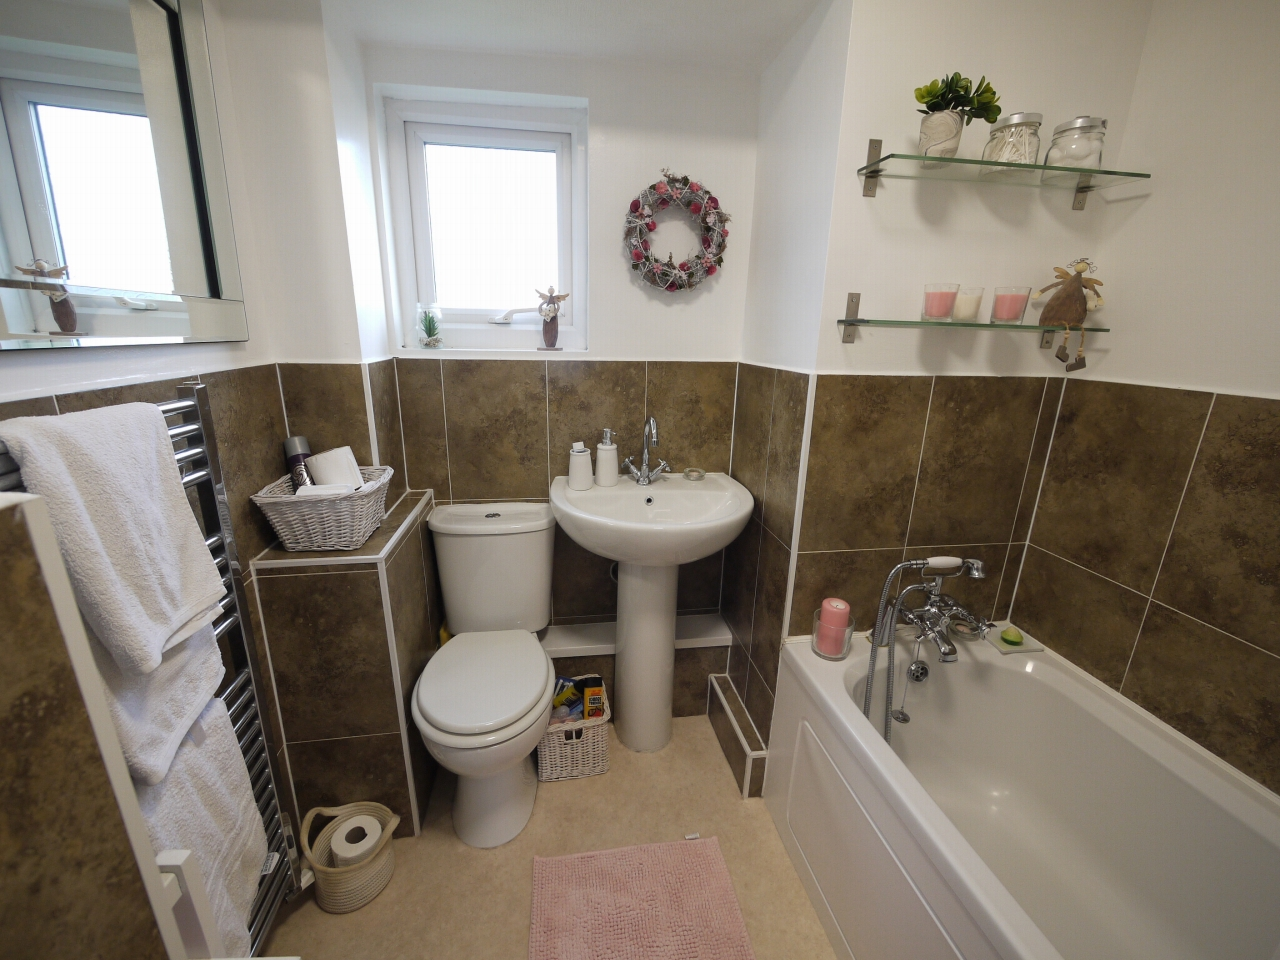 4 bedroom detached house SSTC in Brighouse - Photograph 16.